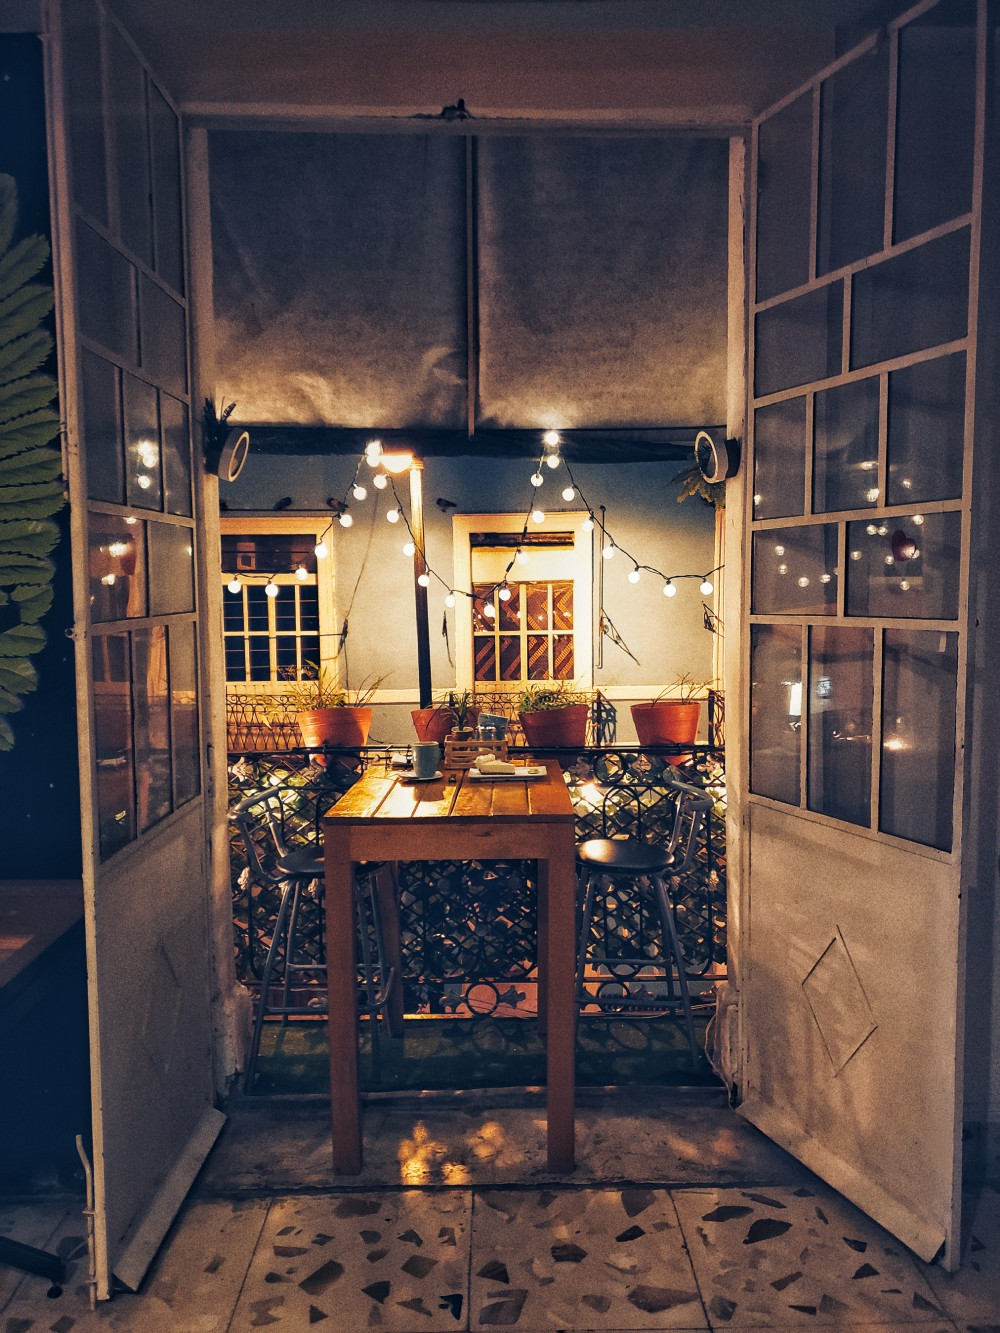 A private table and balcony for two surrounded by lights and spanish architecture.